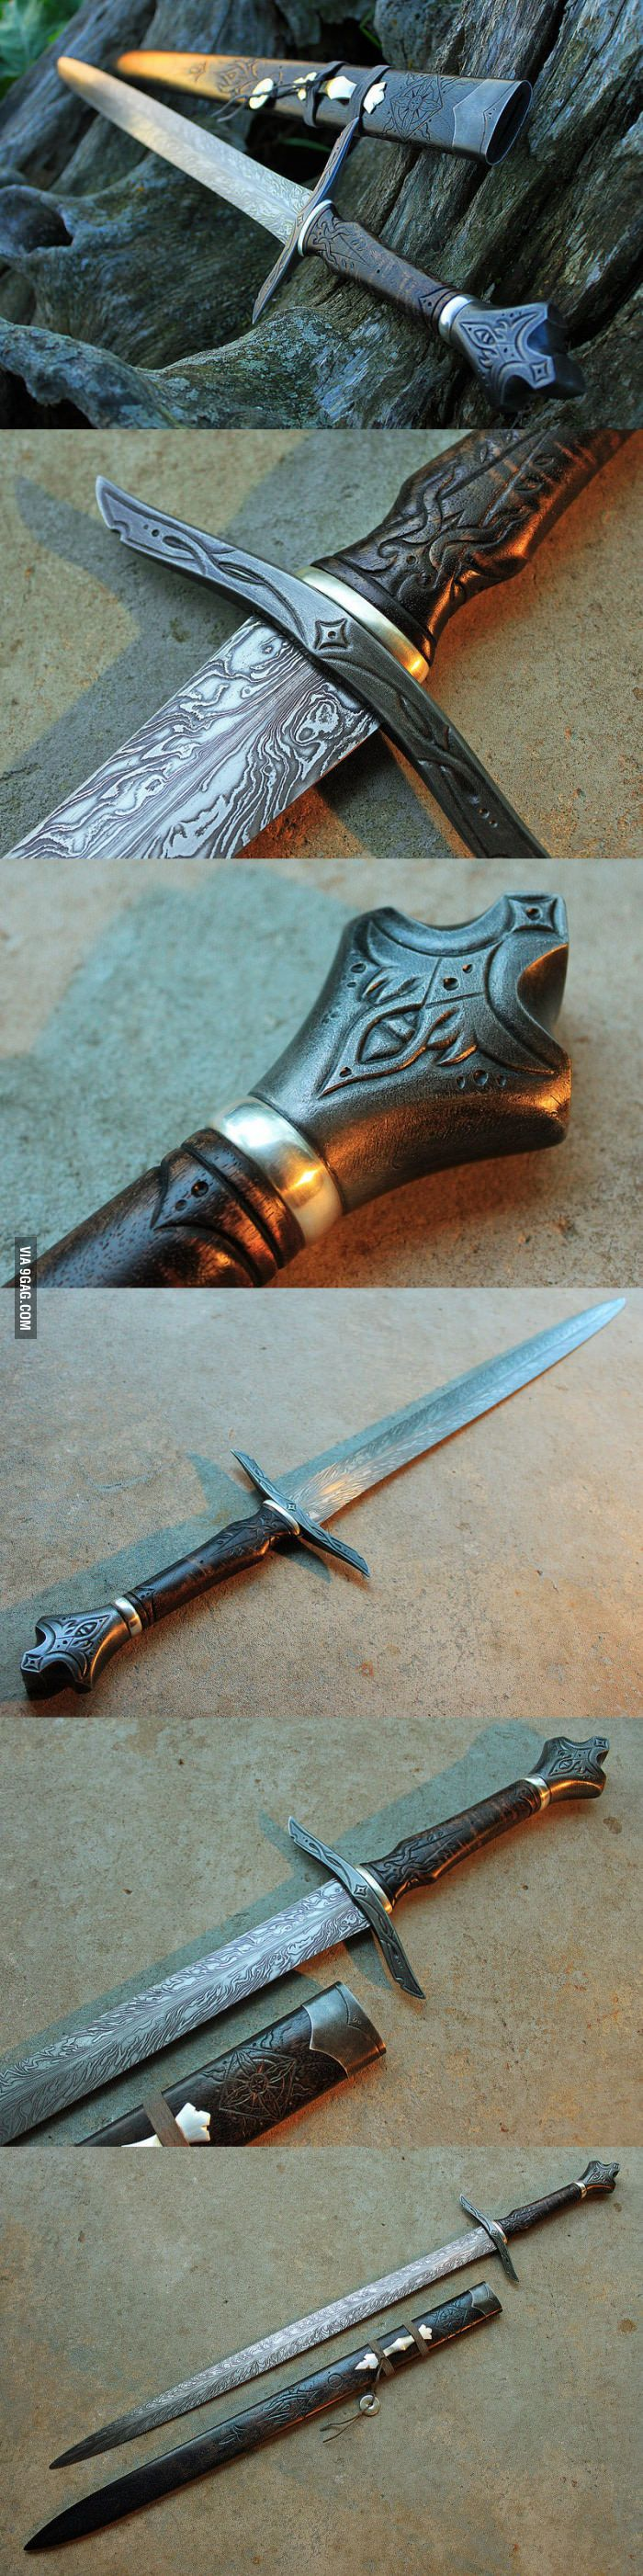 Are we still into swords? Here's an amazing one from Cedarlore Forge - 9GAG